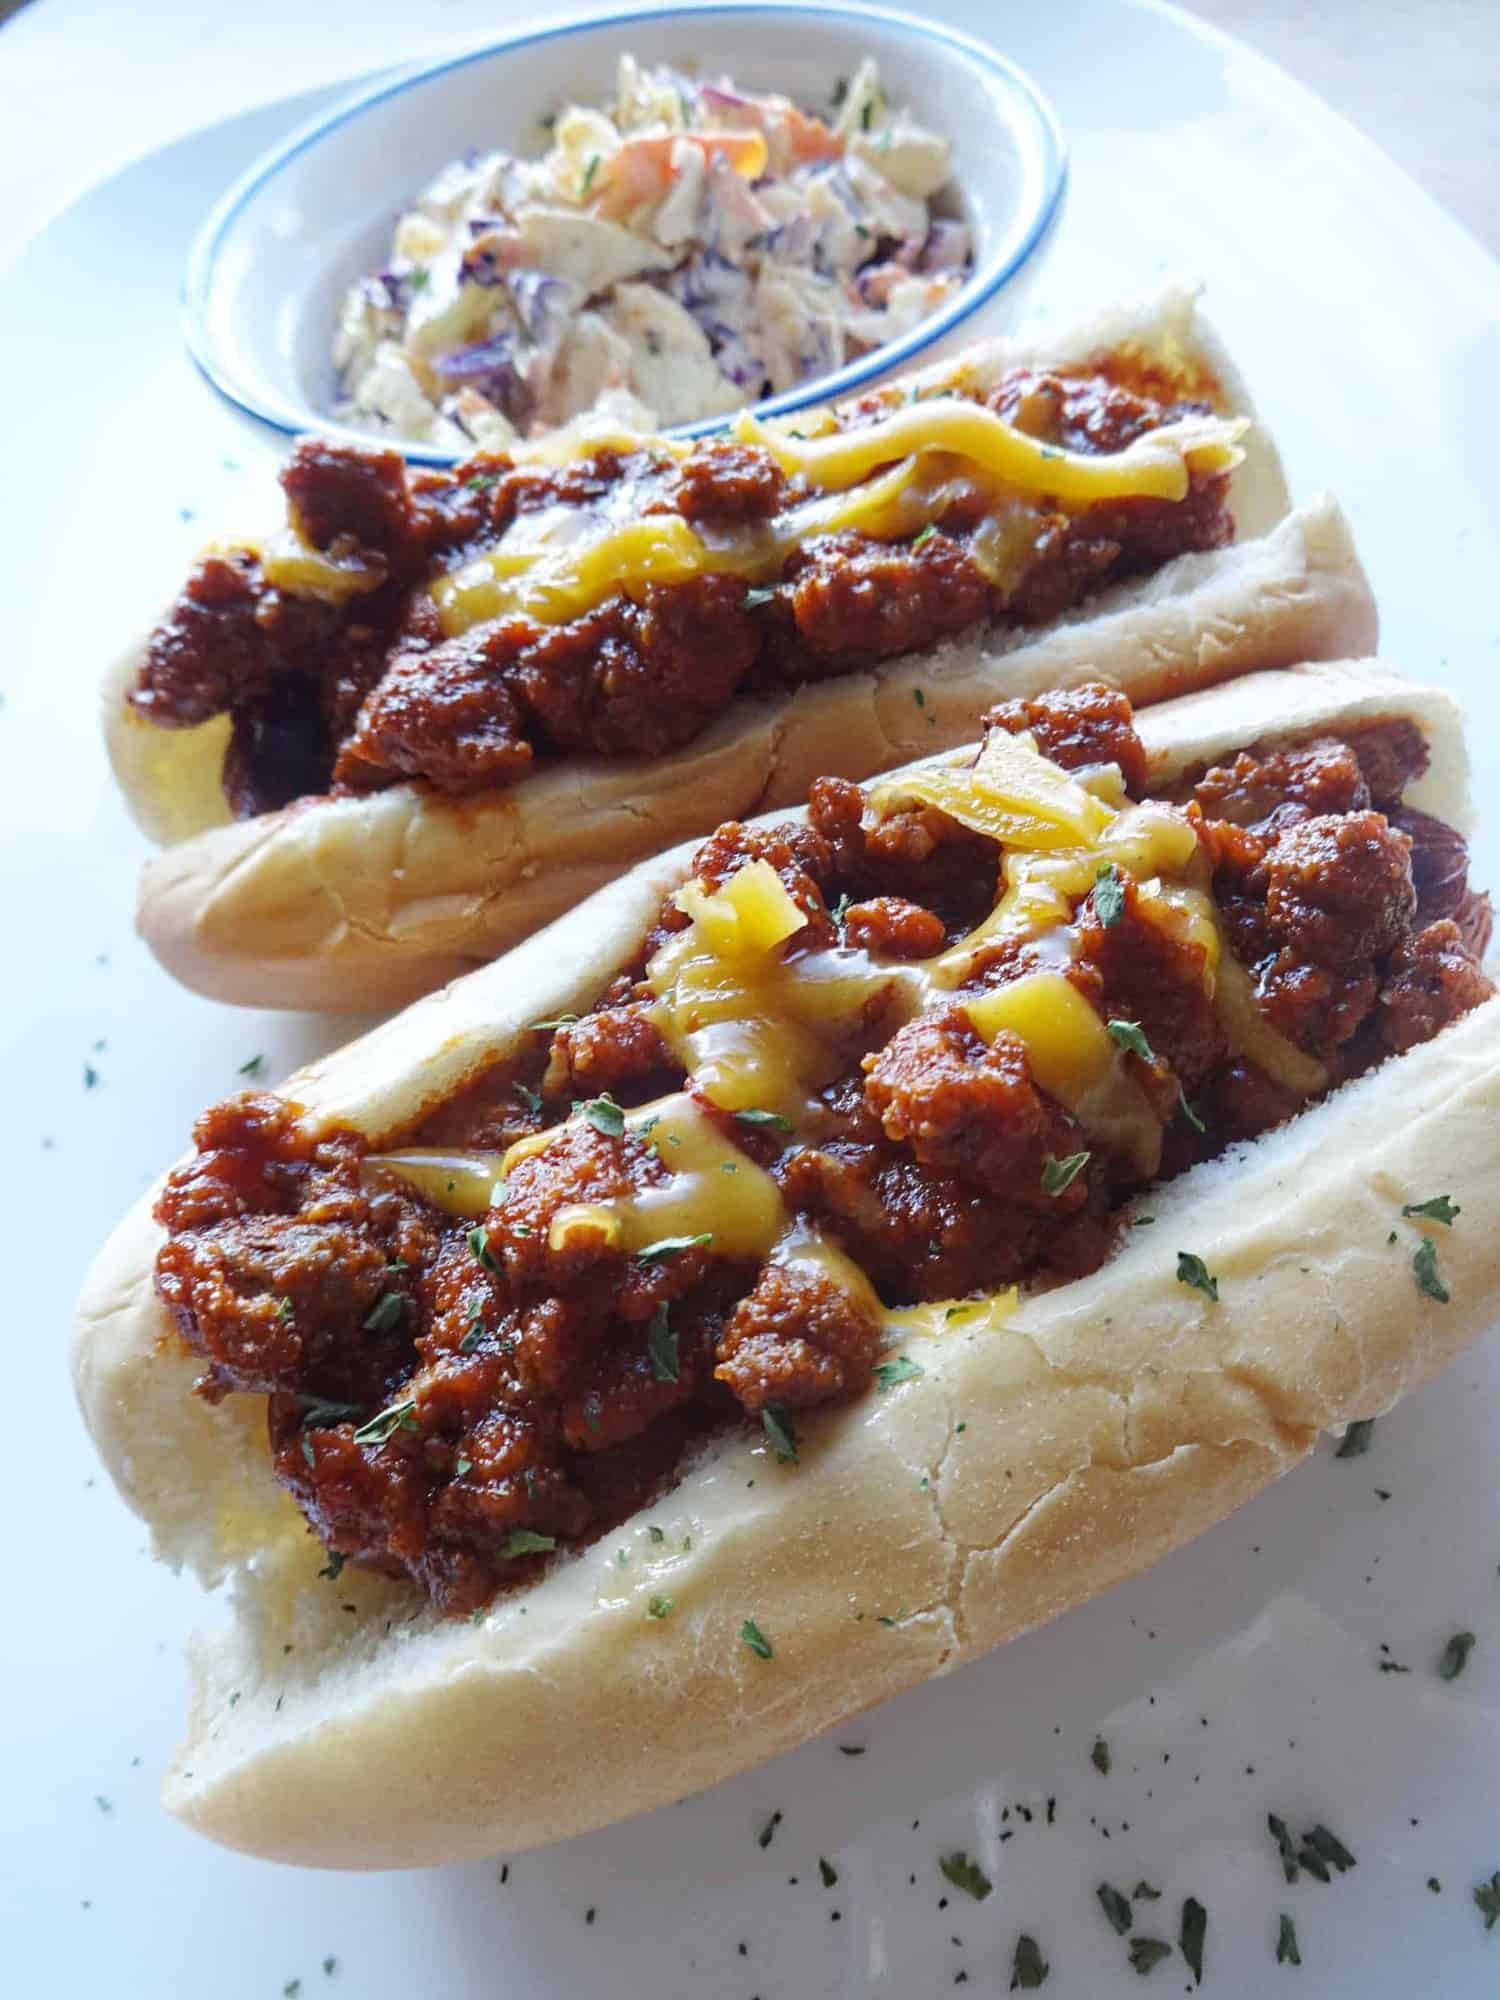 Hot Dog Chili Recipe Easy Delicious Savory With Soul